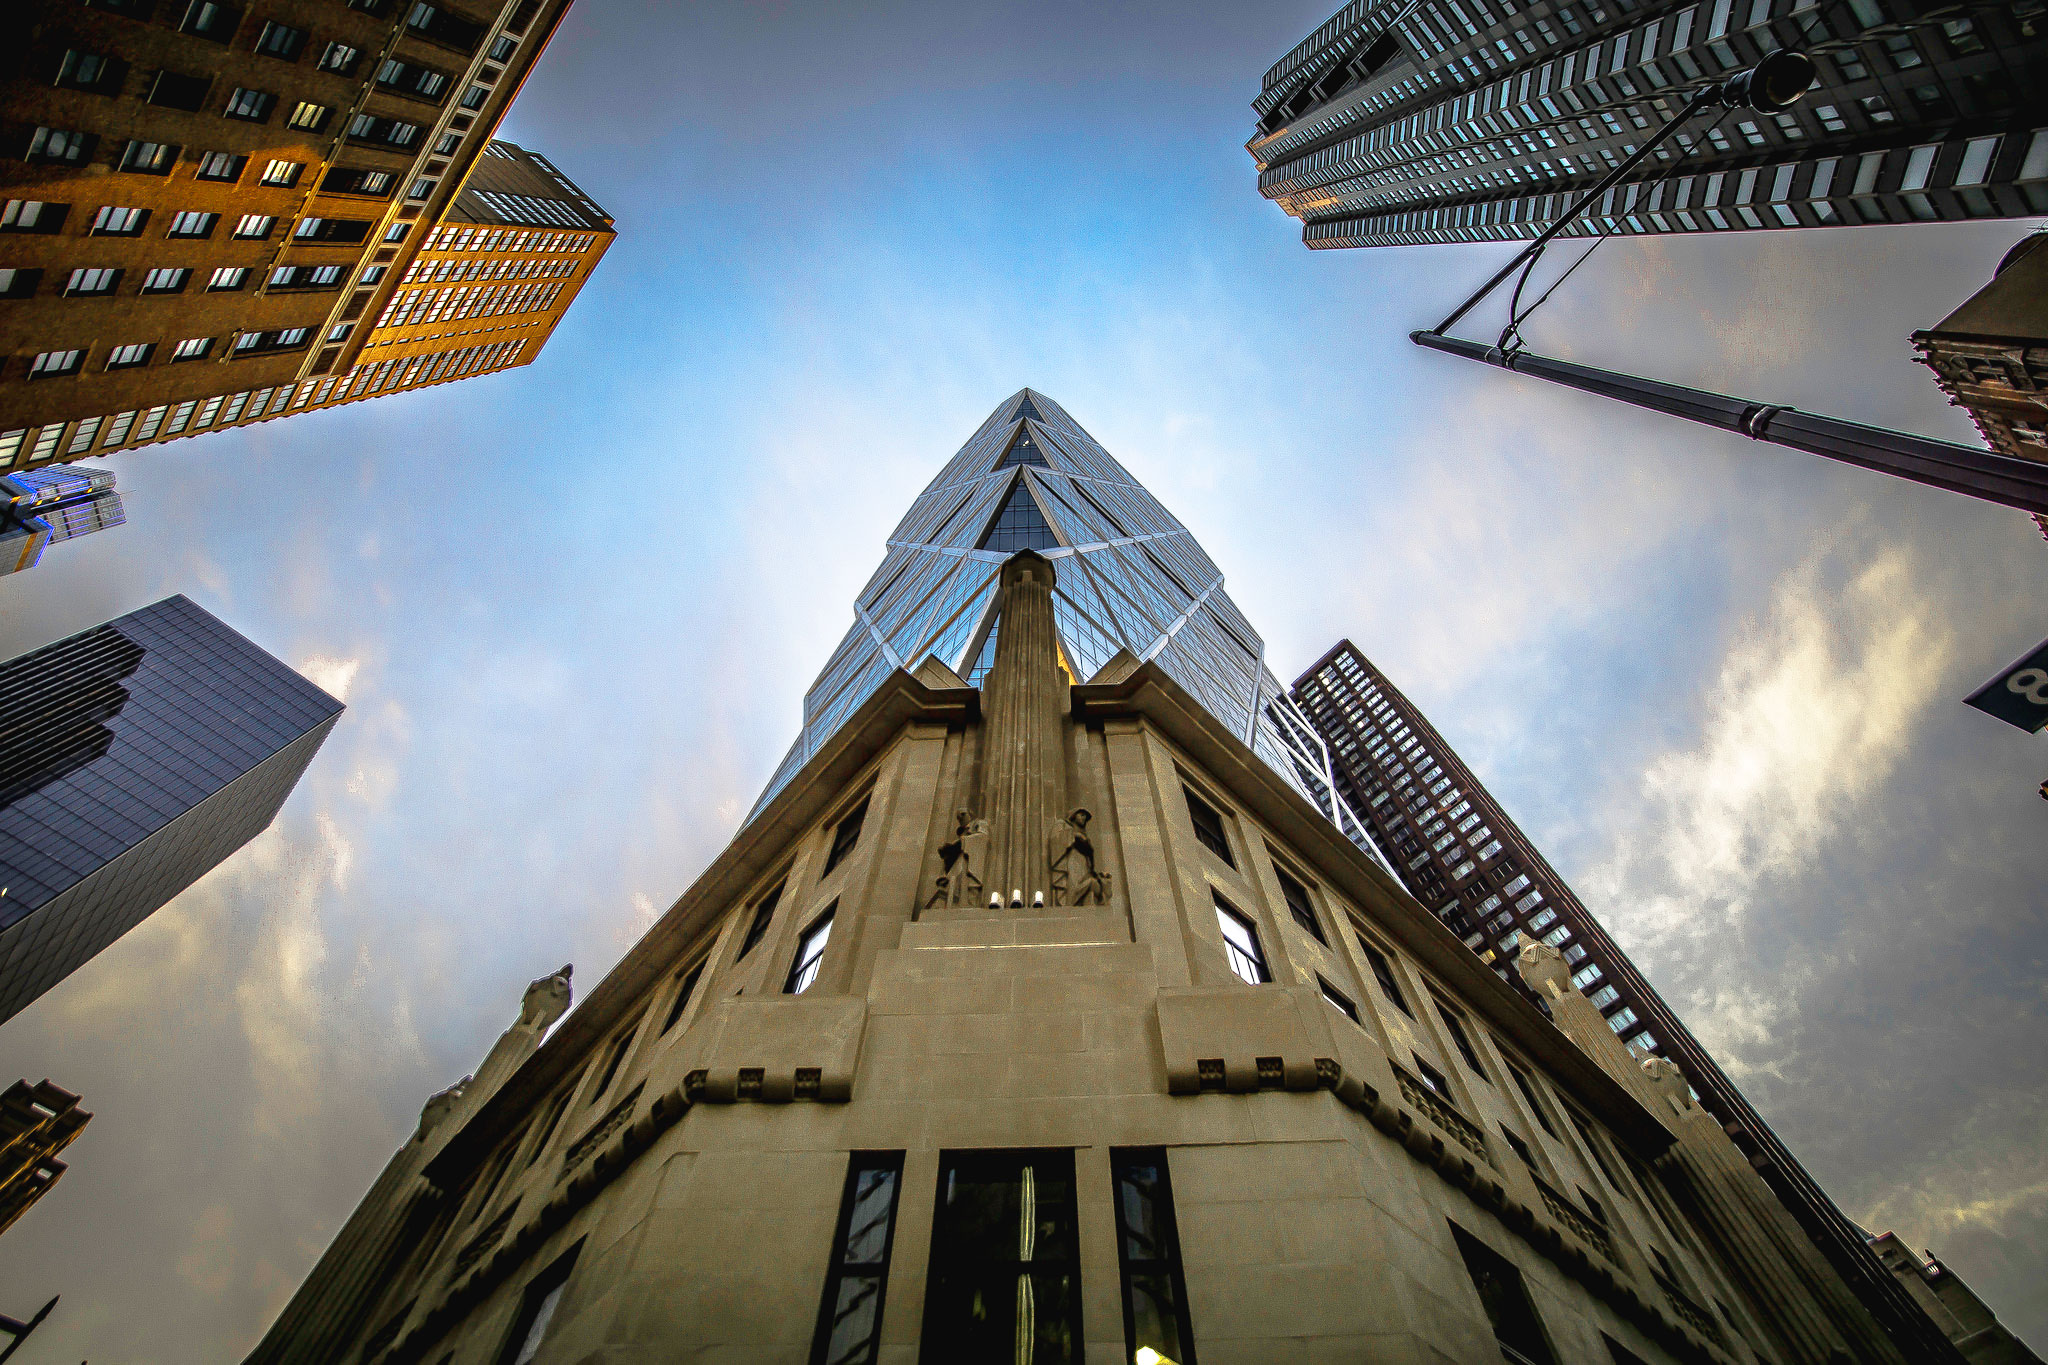 Hearst Tower in New York City